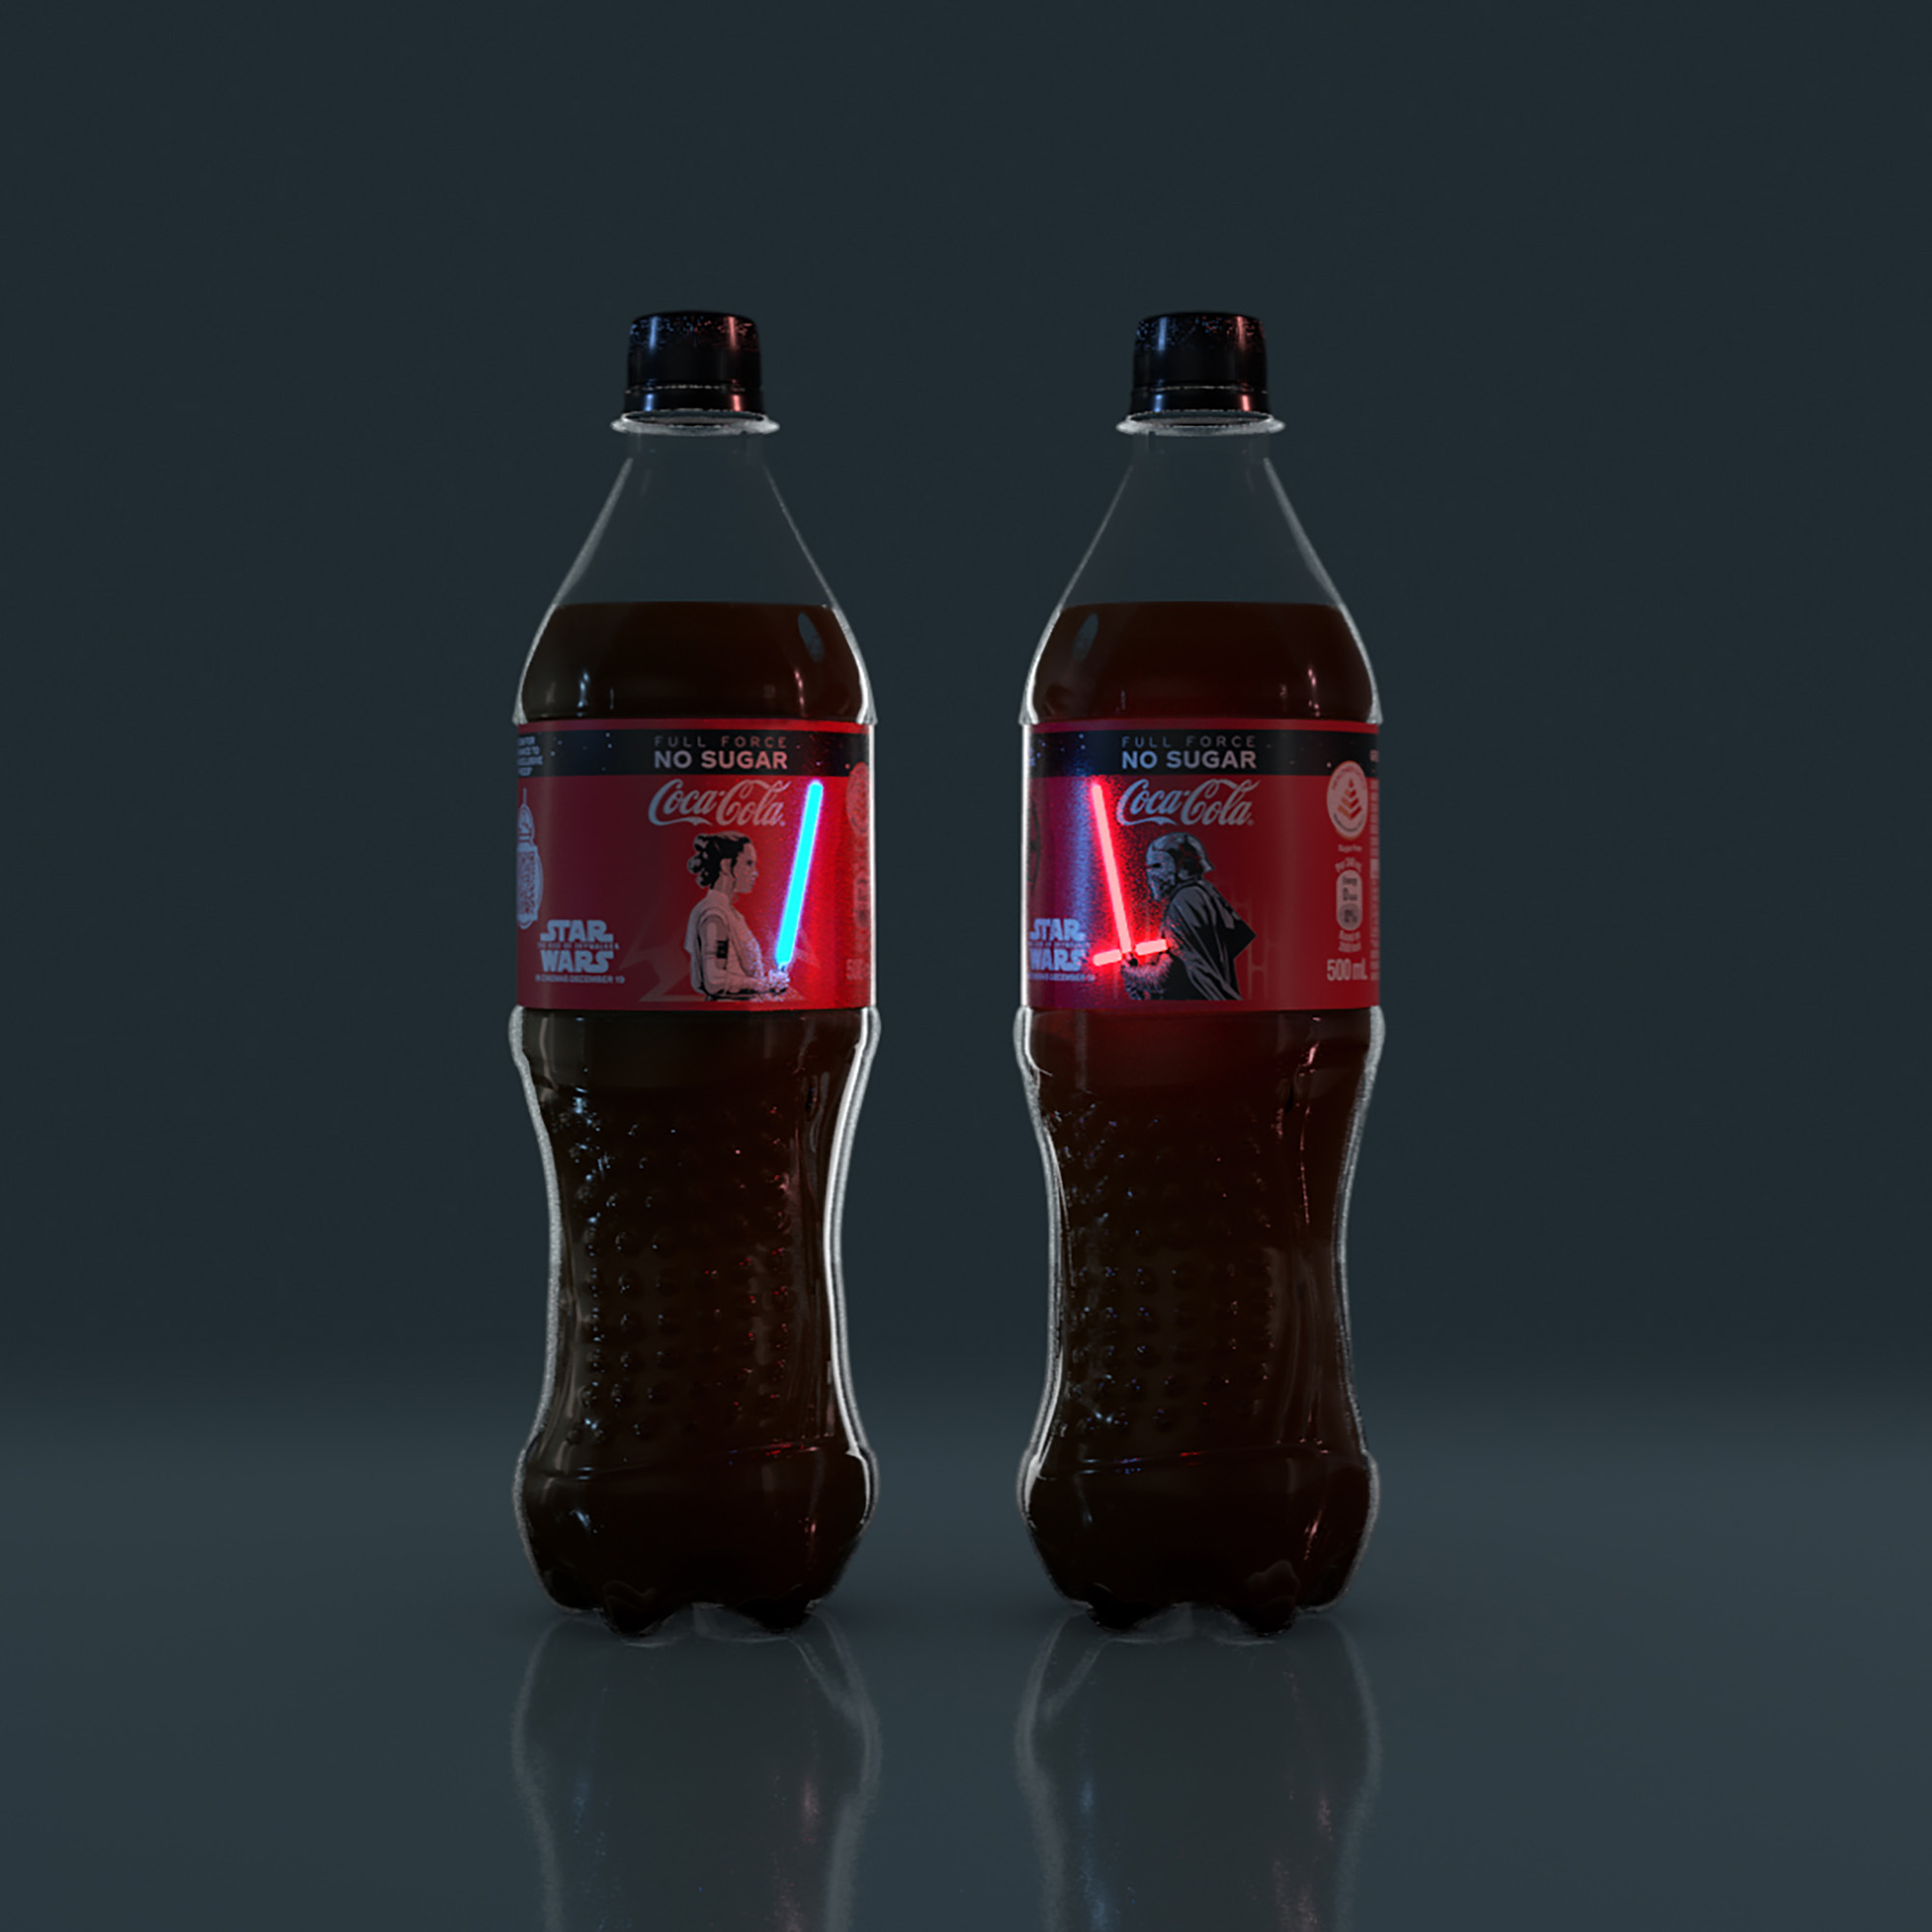 Limited Coca-Cola bottles with glowing shrink-sleeve labels with Rey and Kylo Ren